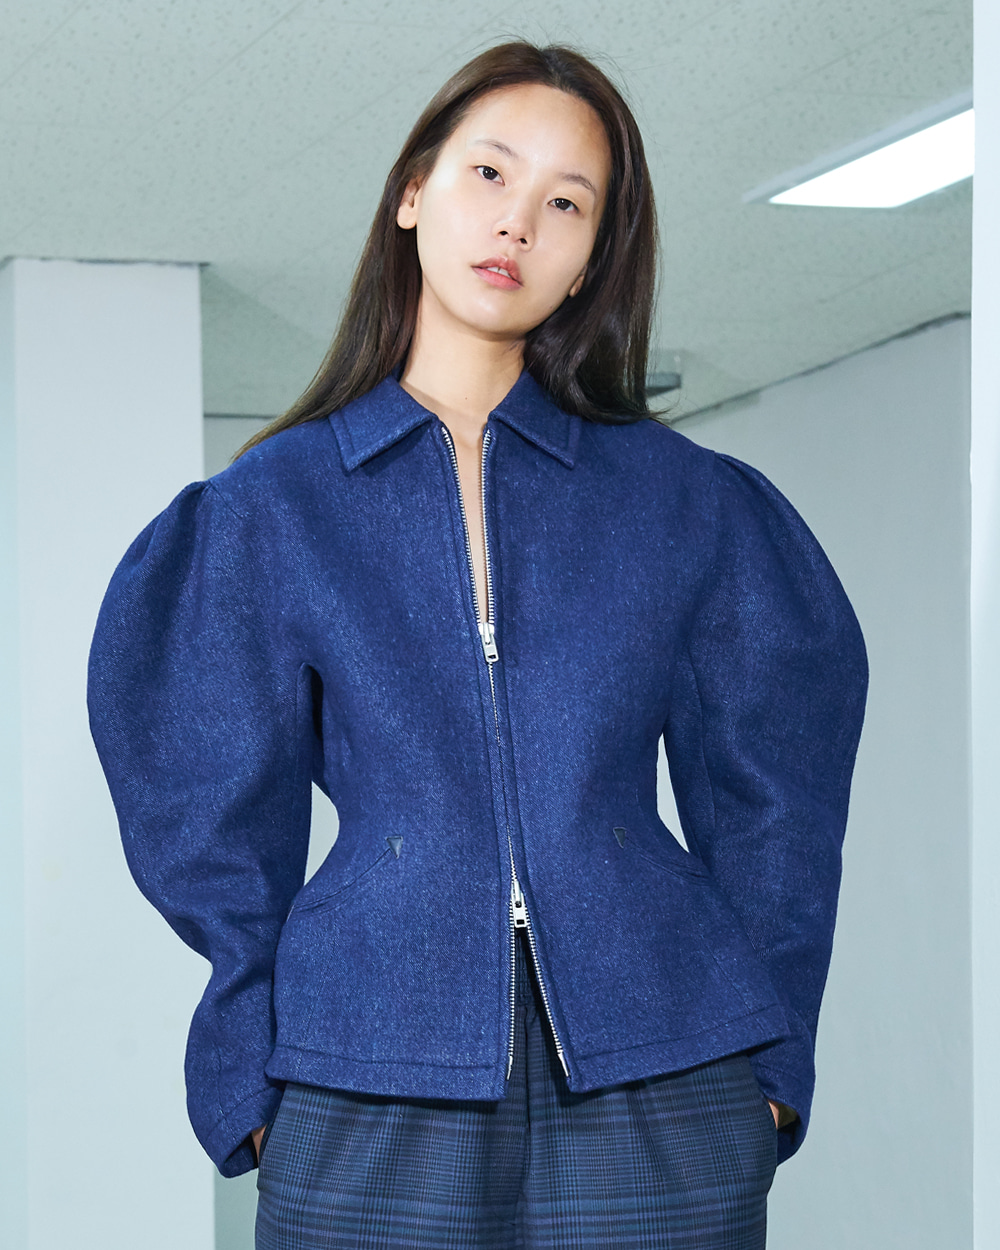 PF19 NAVY PUFF SLEEVED ZIPUP JACKET